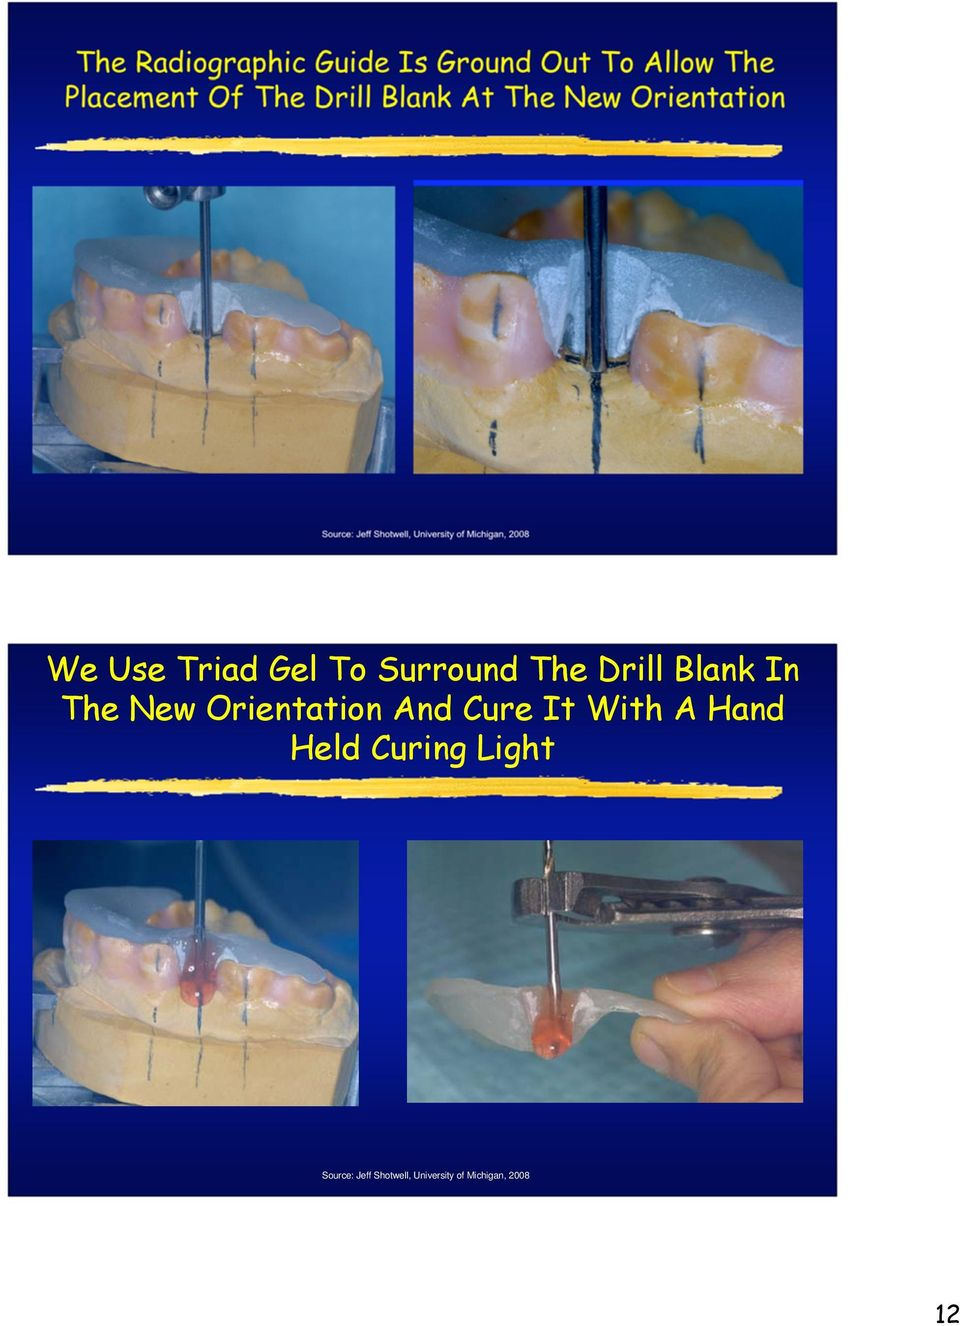 We Use Triad Gel To Surround The Drill Blank In The